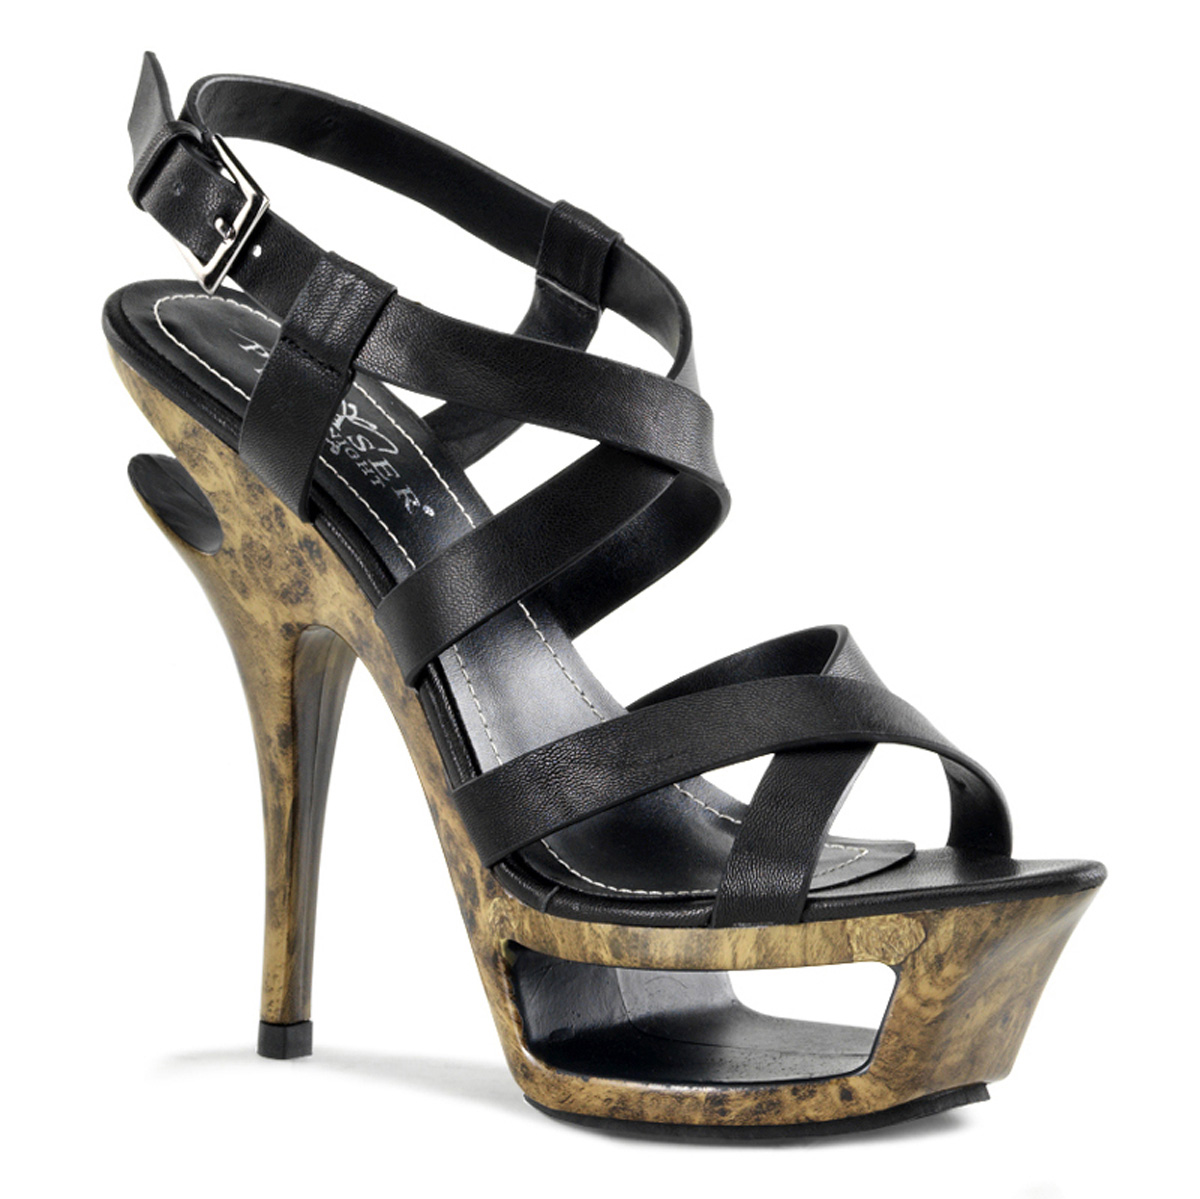 "PLEASER DAY-NIGHT 5 1/2"" Heel, 1 3/4"" Cut-Out PF Criss Cross Sandal at Sears.com"